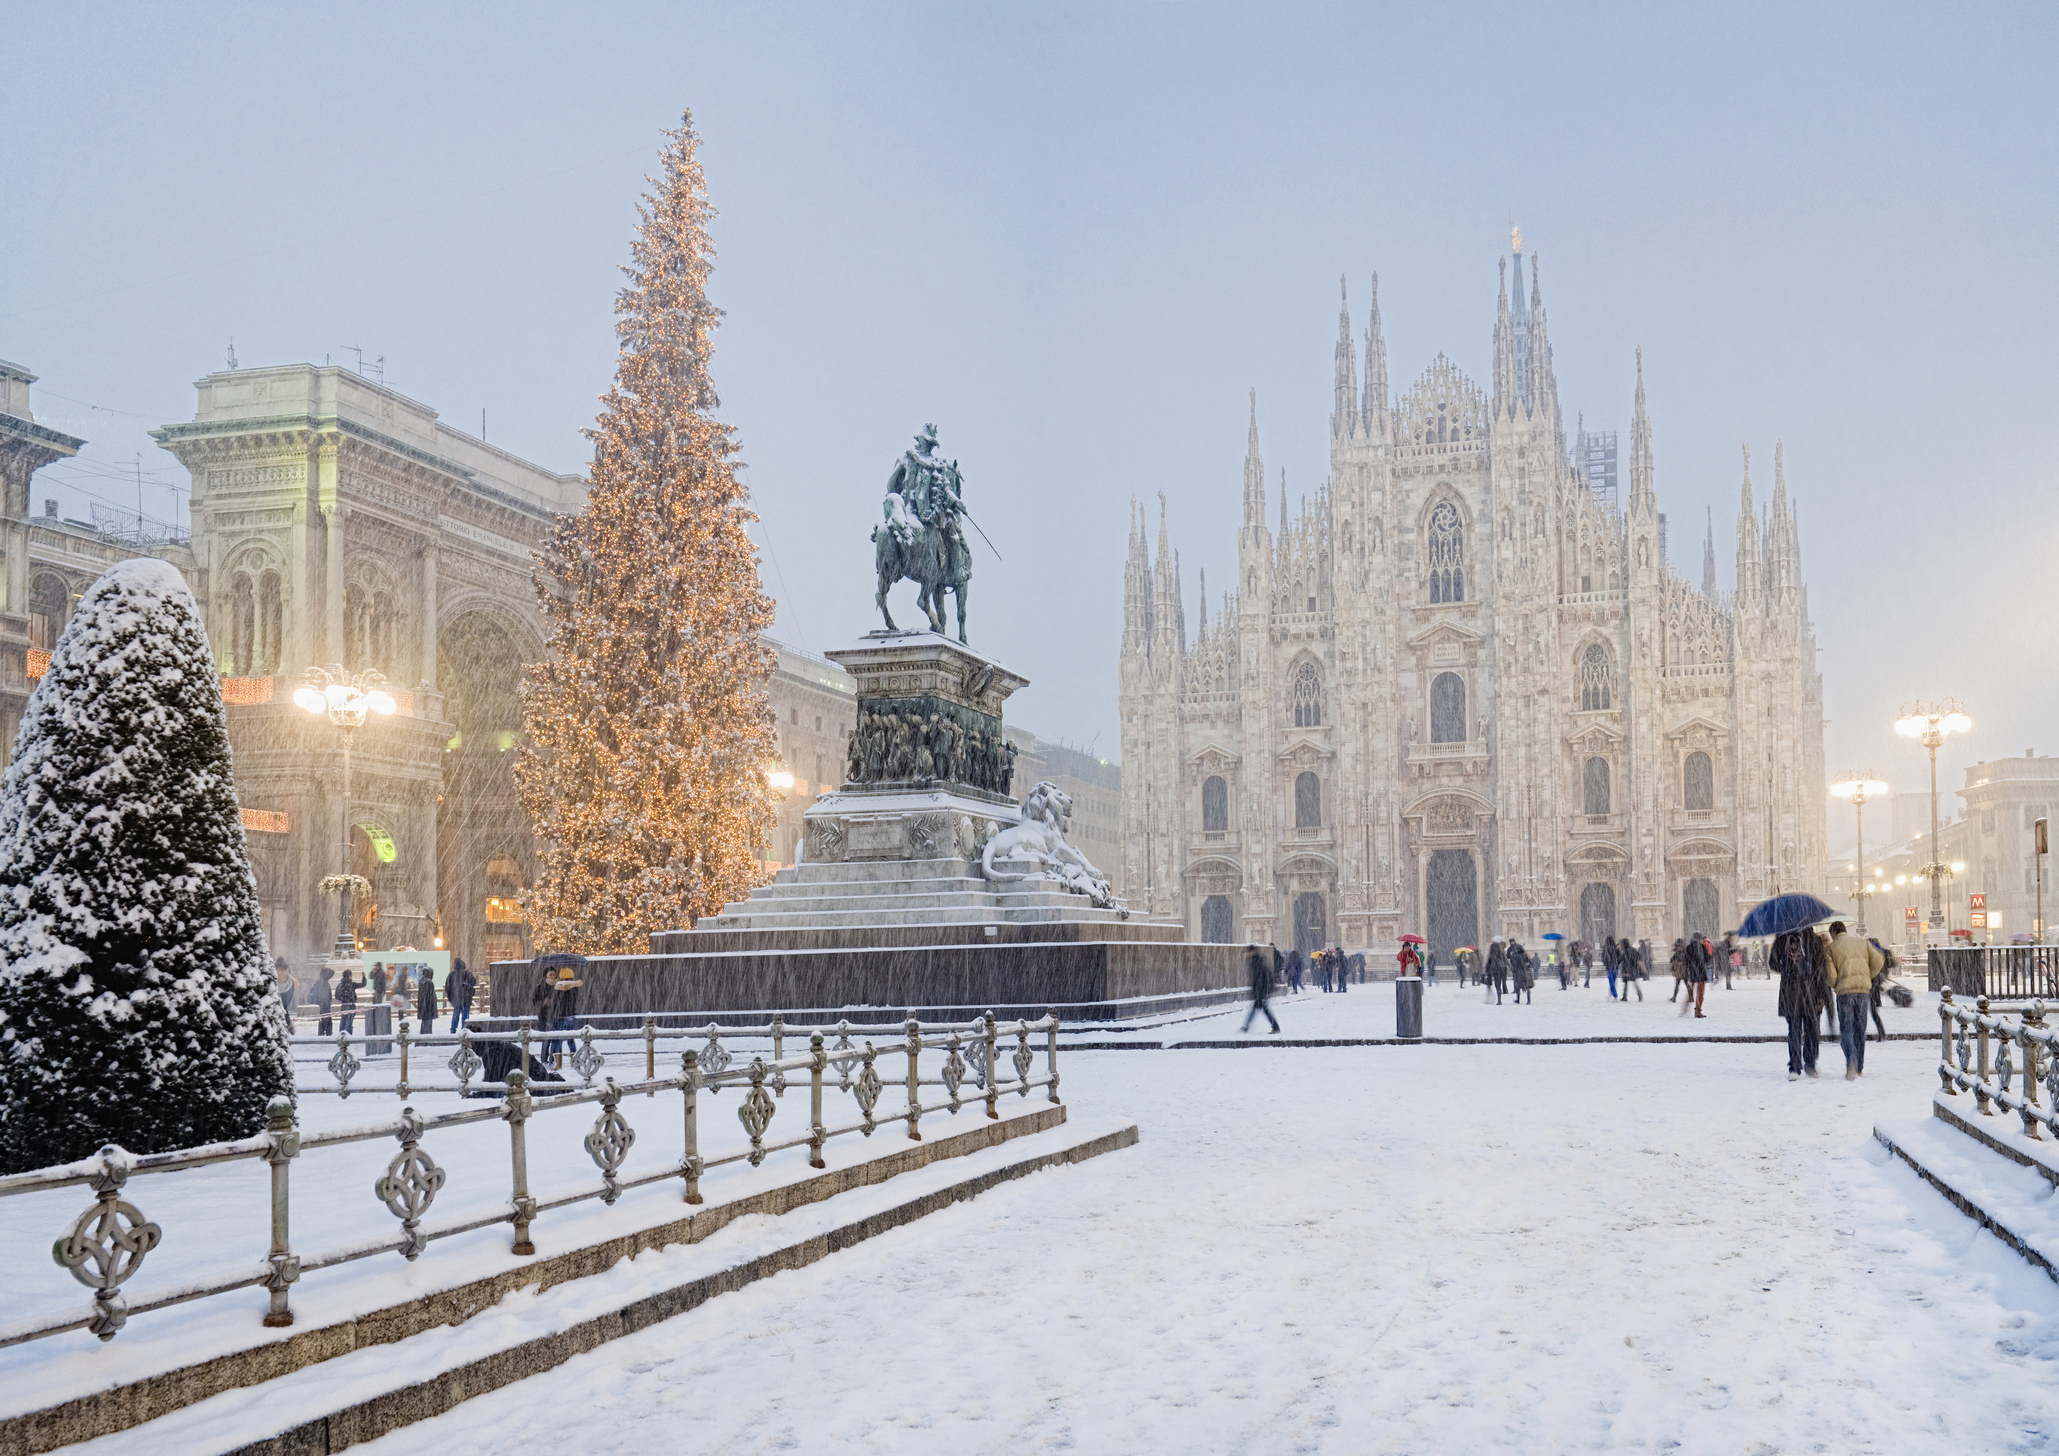 Cuisine, culture, comfort and cocktails – why Milan should be your next Italian city break